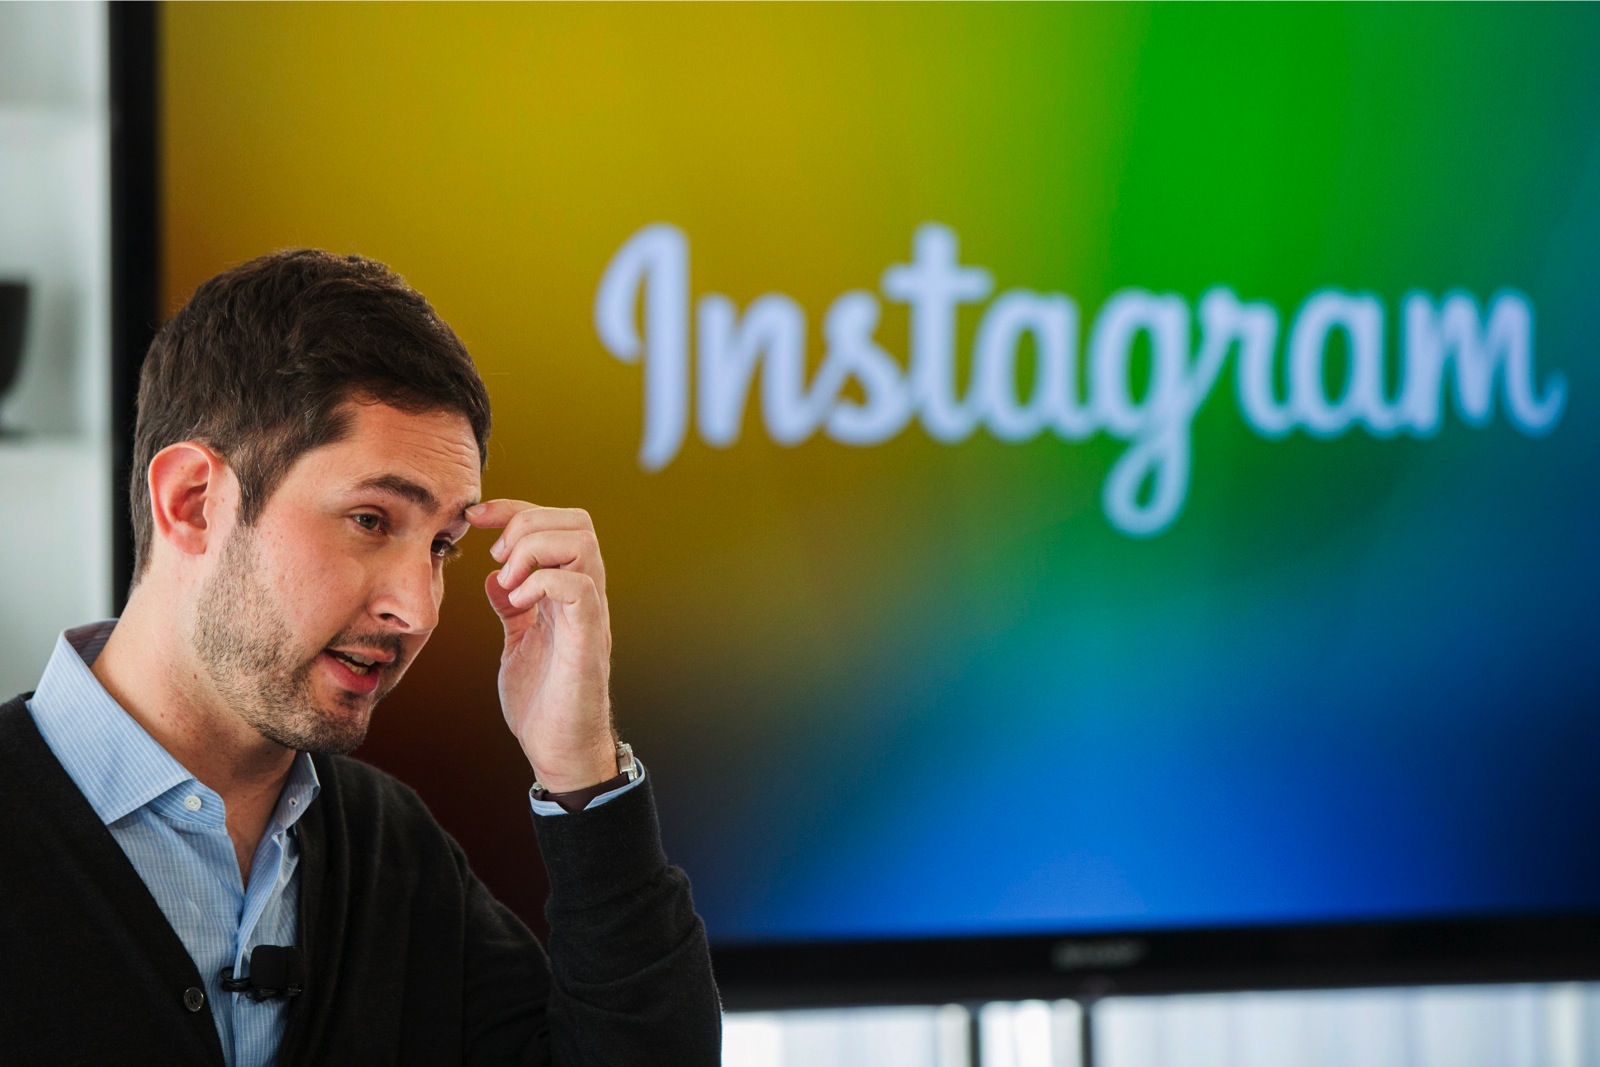 Noul Instagram duce editarea foto la un alt nivel [VIDEO]